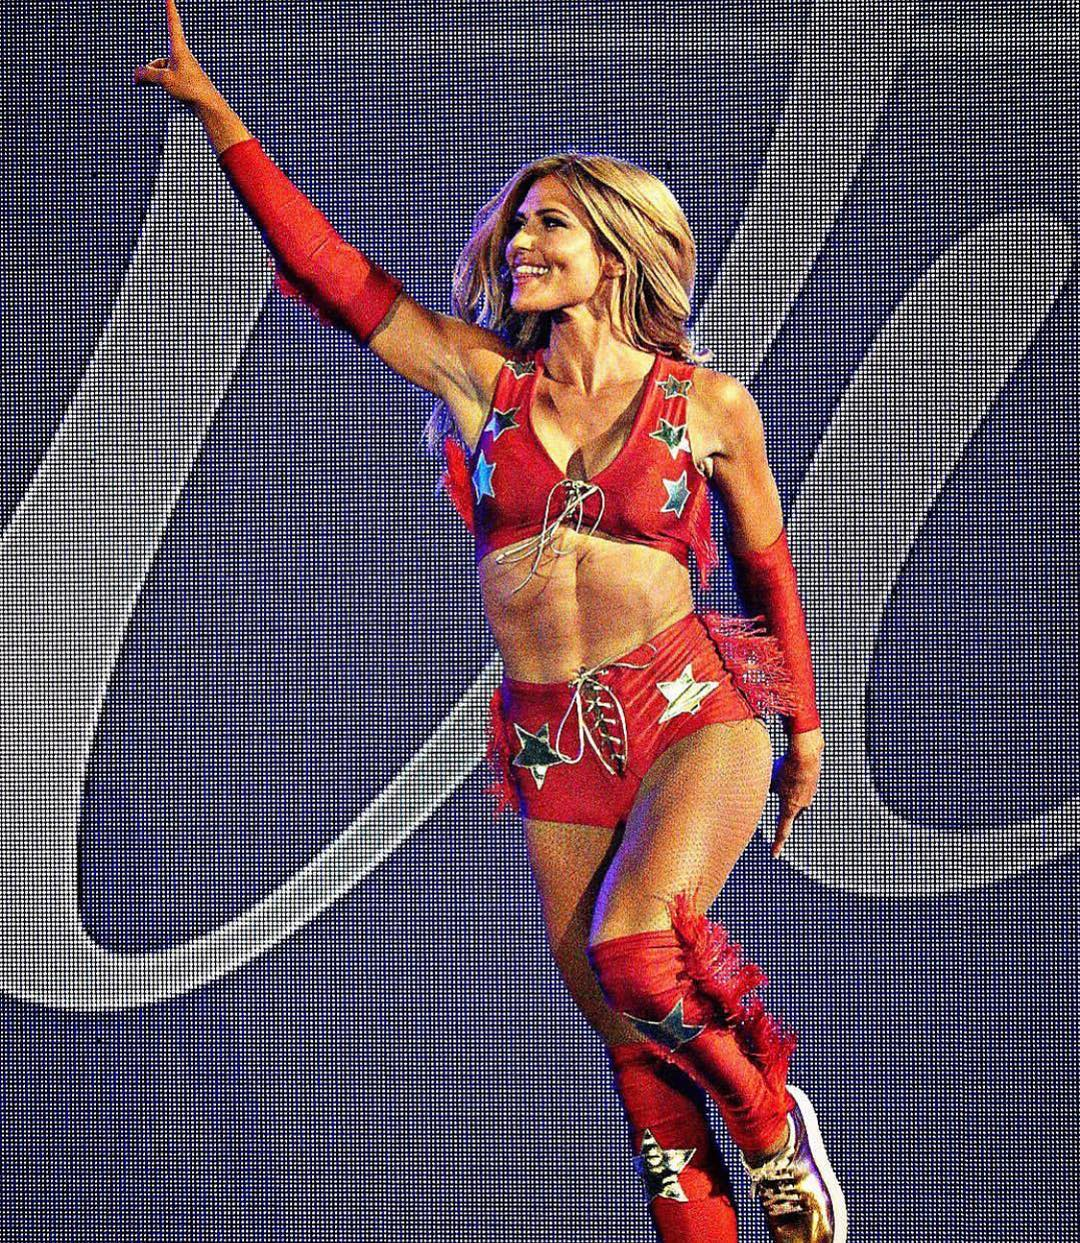 torrie wilson hot red look